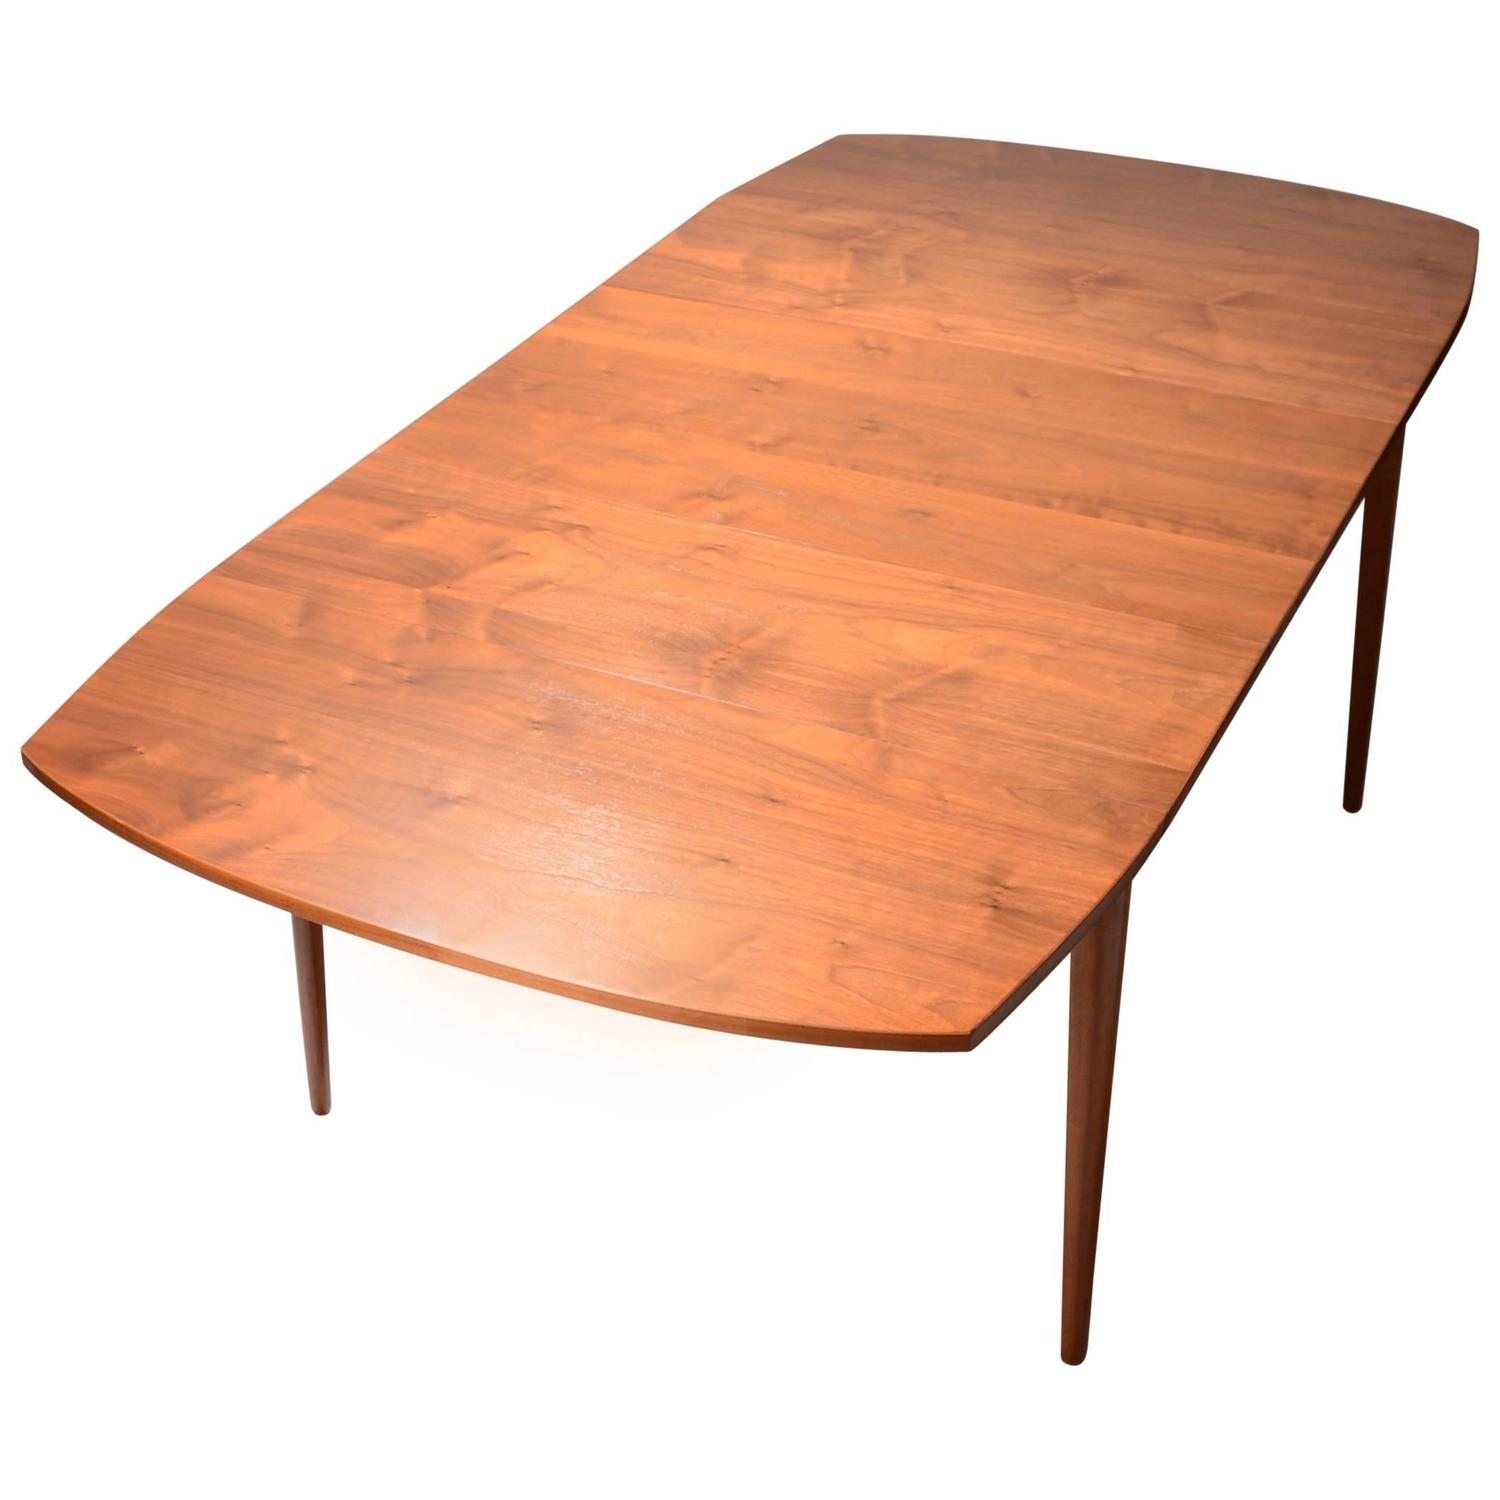 Walnut Drop Leaf Dining Table Stocktonandco : 4912313z from stocktonandco.com size 1500 x 1500 jpeg 80kB